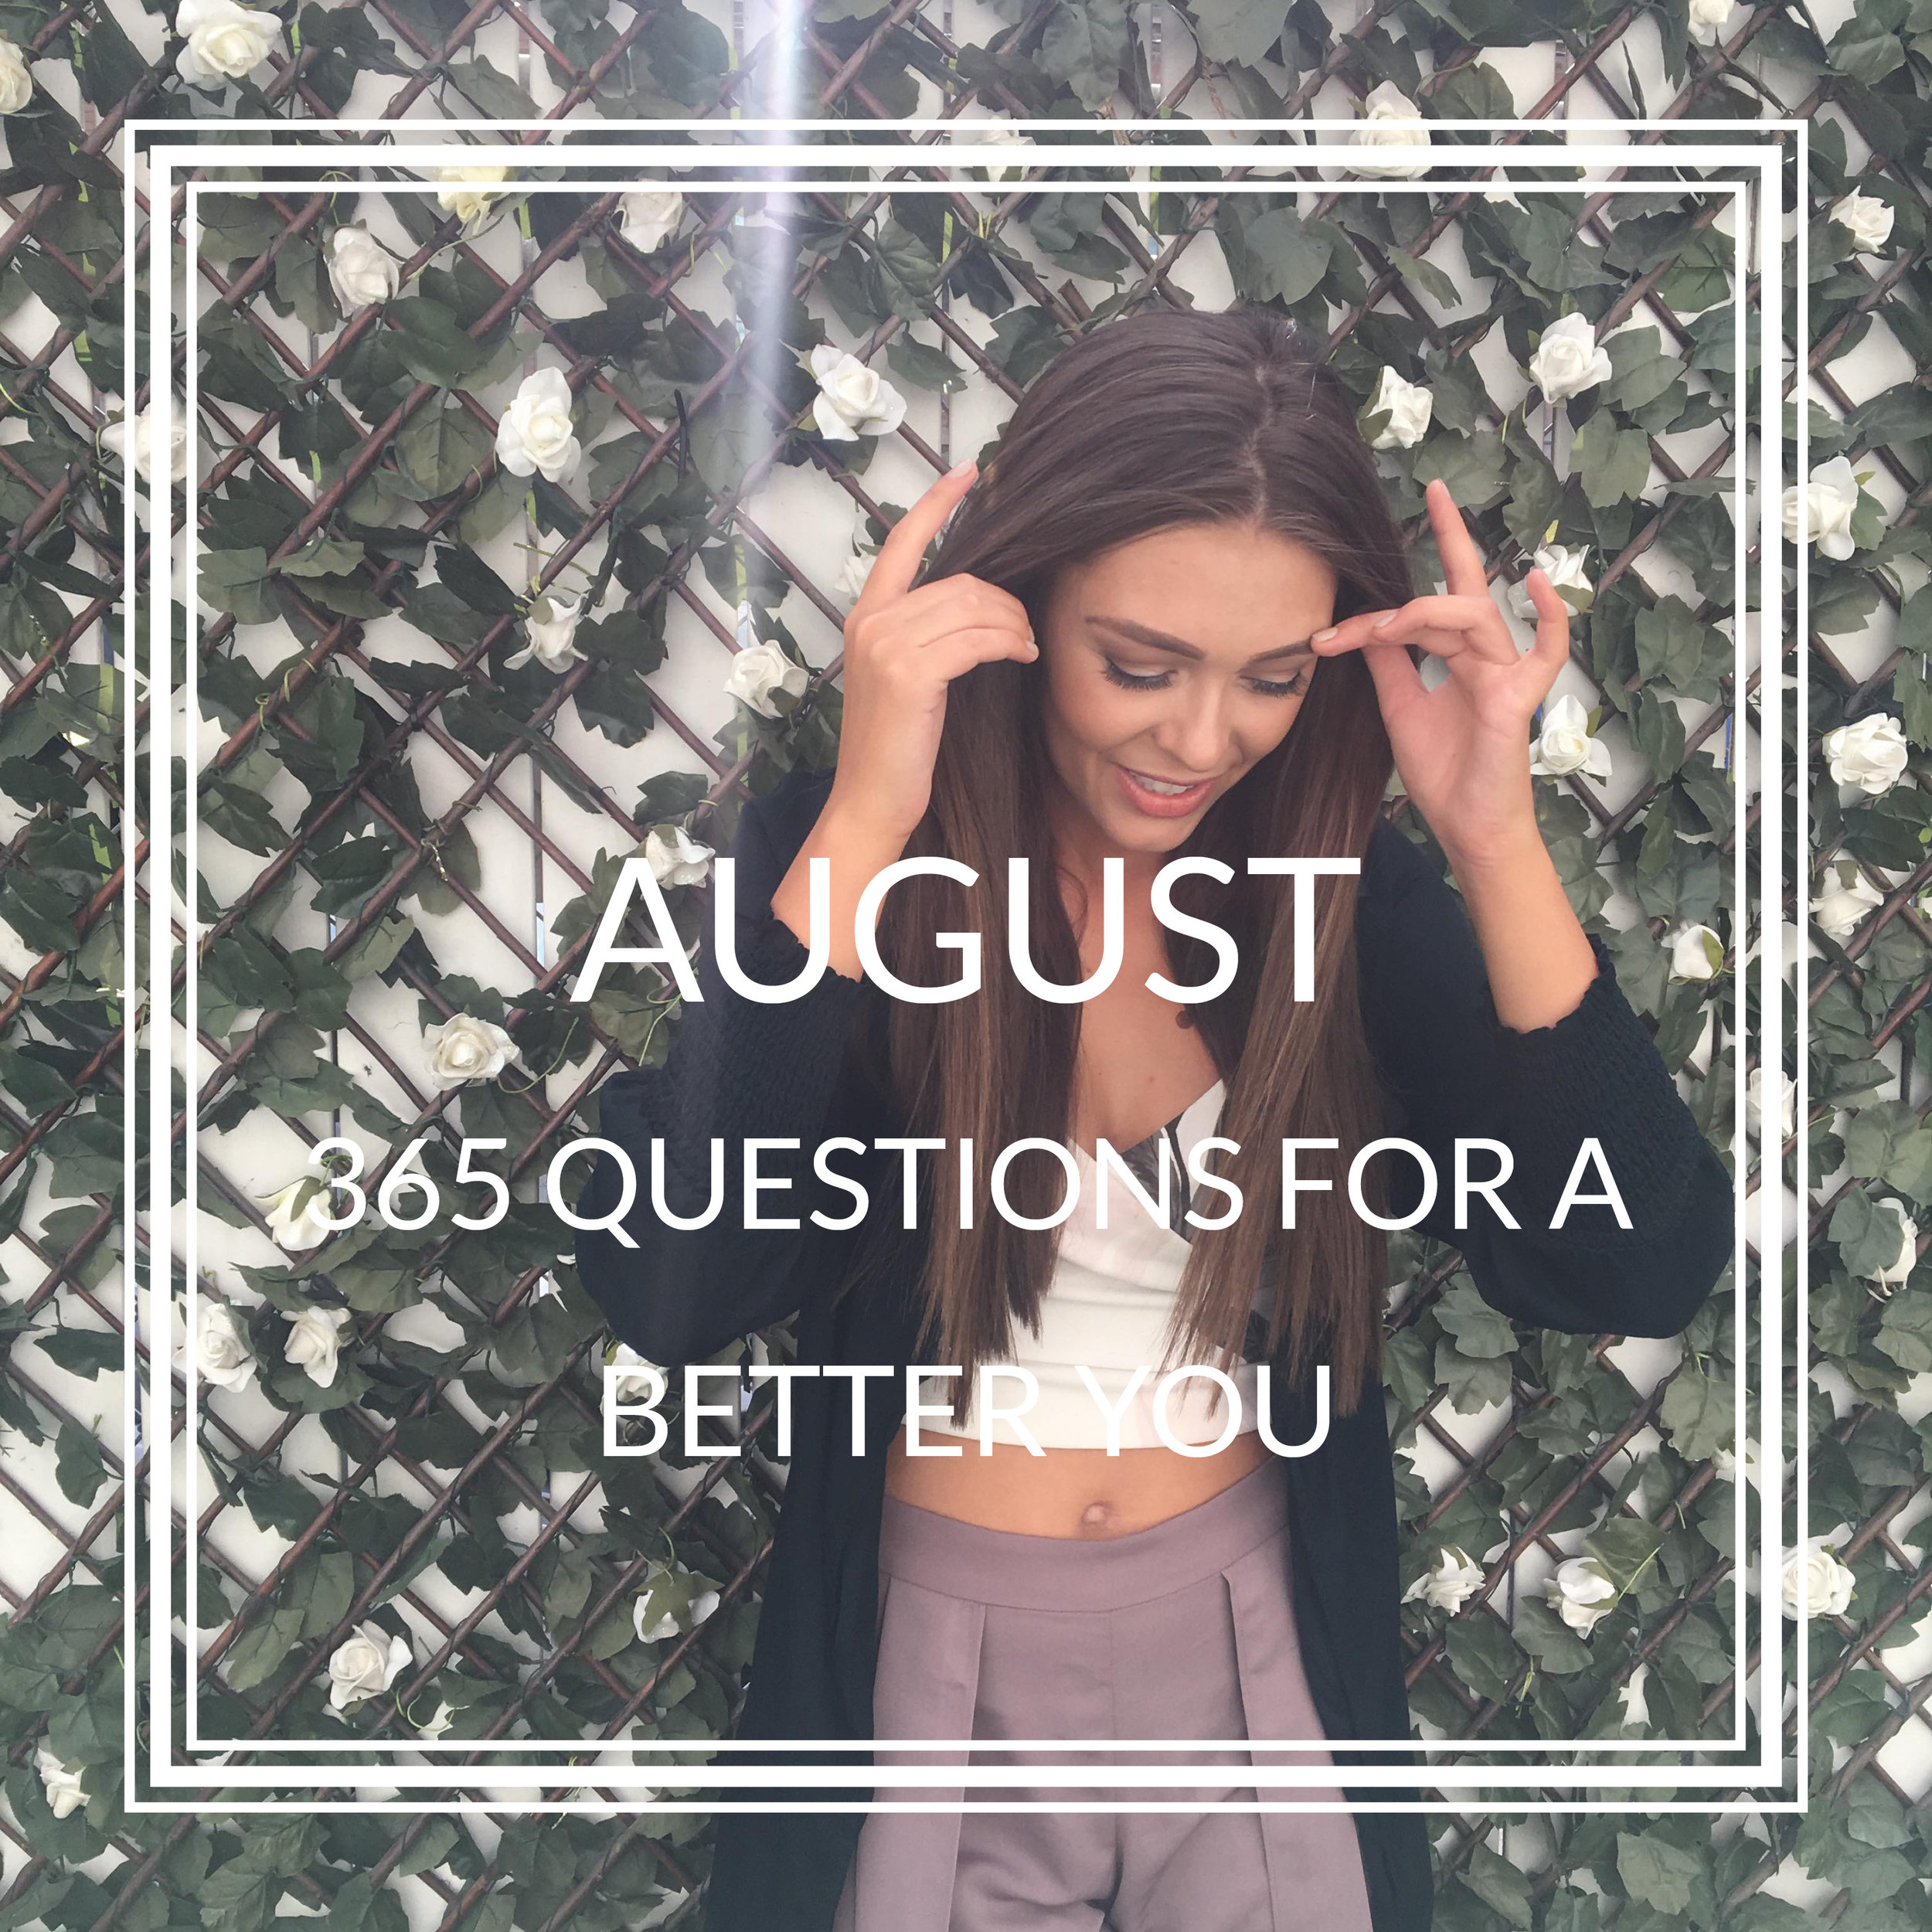 AUGUST QUESTIONS.jpg